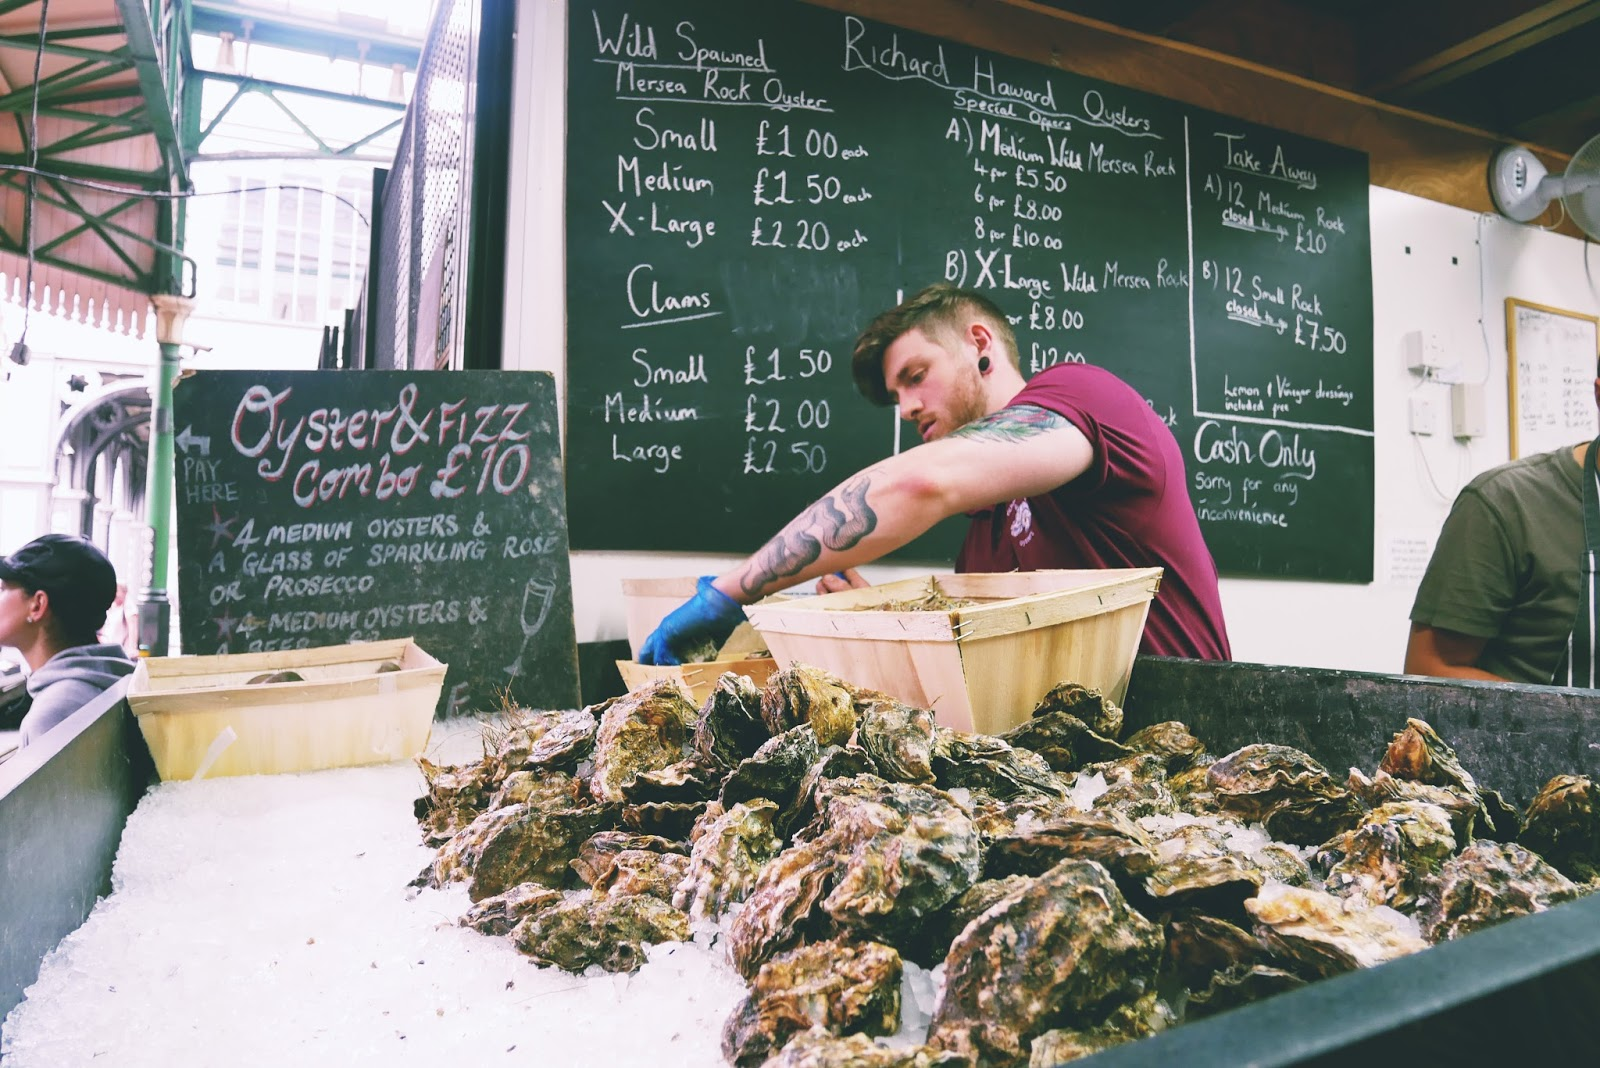 Richard Haward Oyster, Borough Market, London